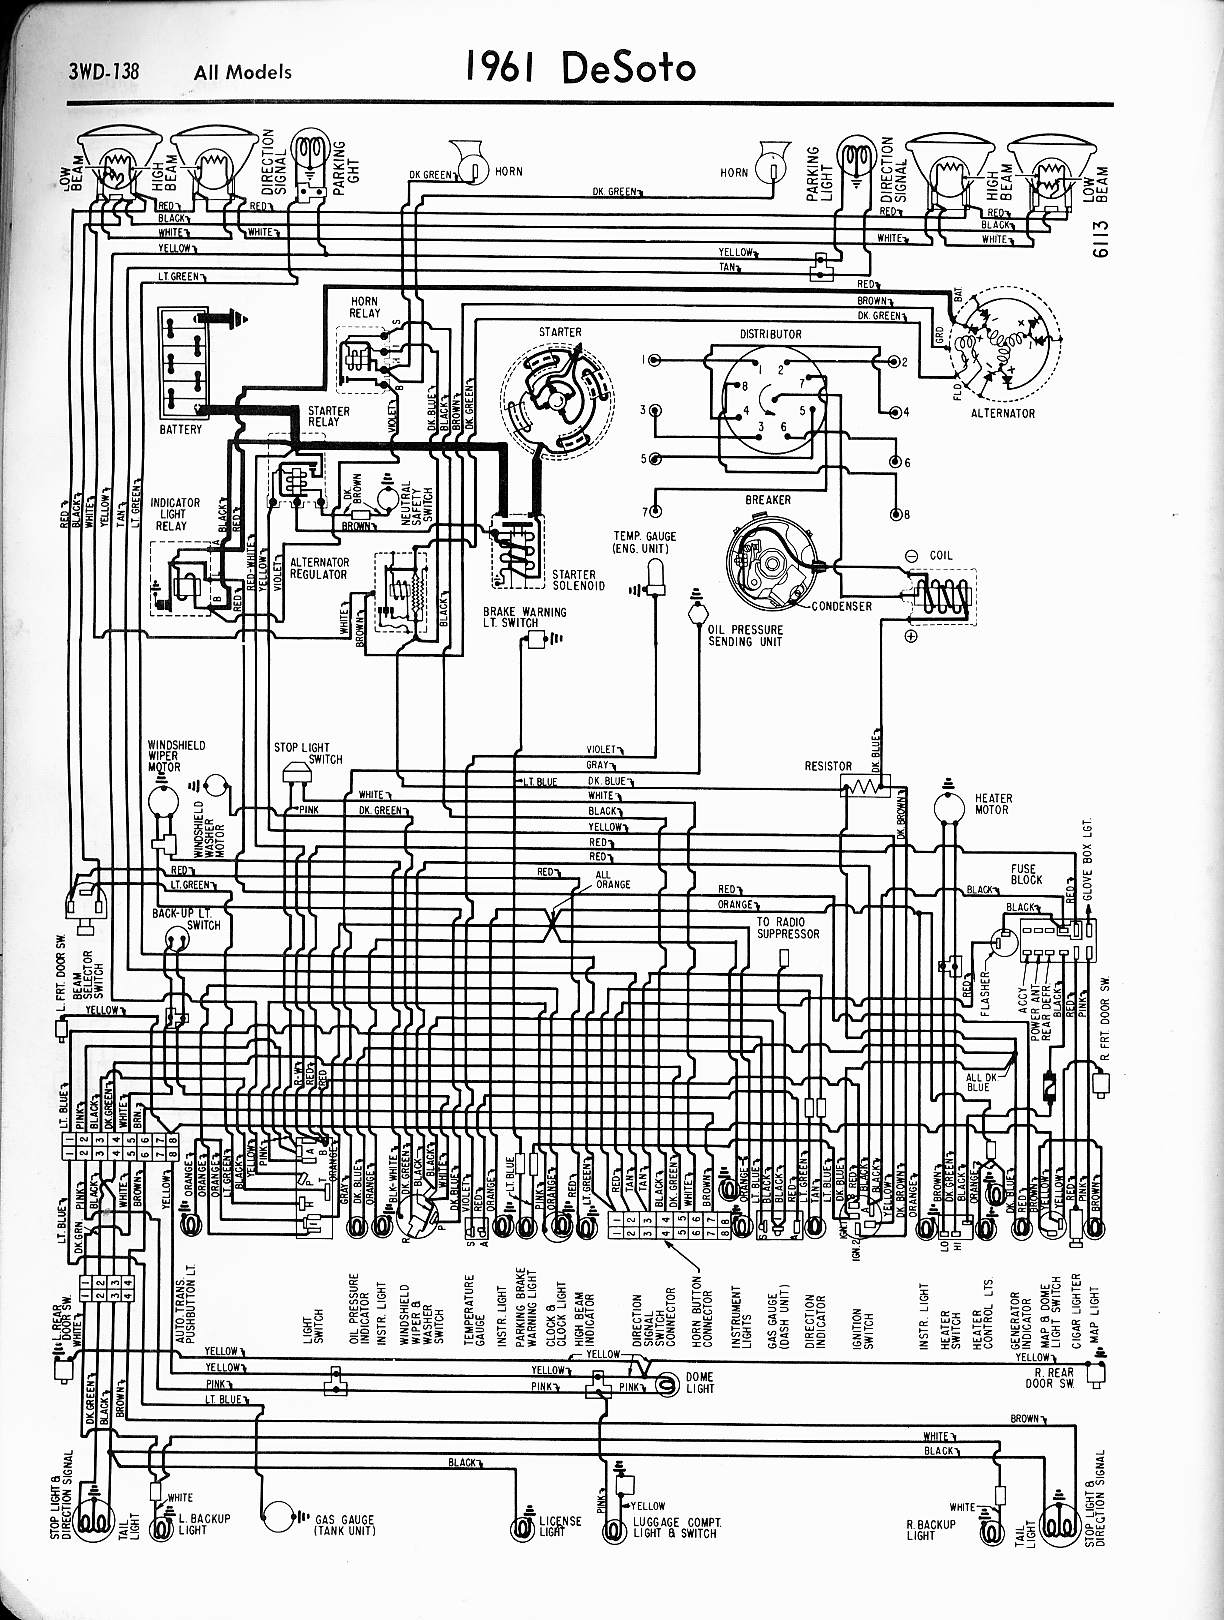 MWire5765 138 1938 desoto parts pictures to pin on pinterest pinsdaddy,1951 Desoto Headlight Wiring Diagram